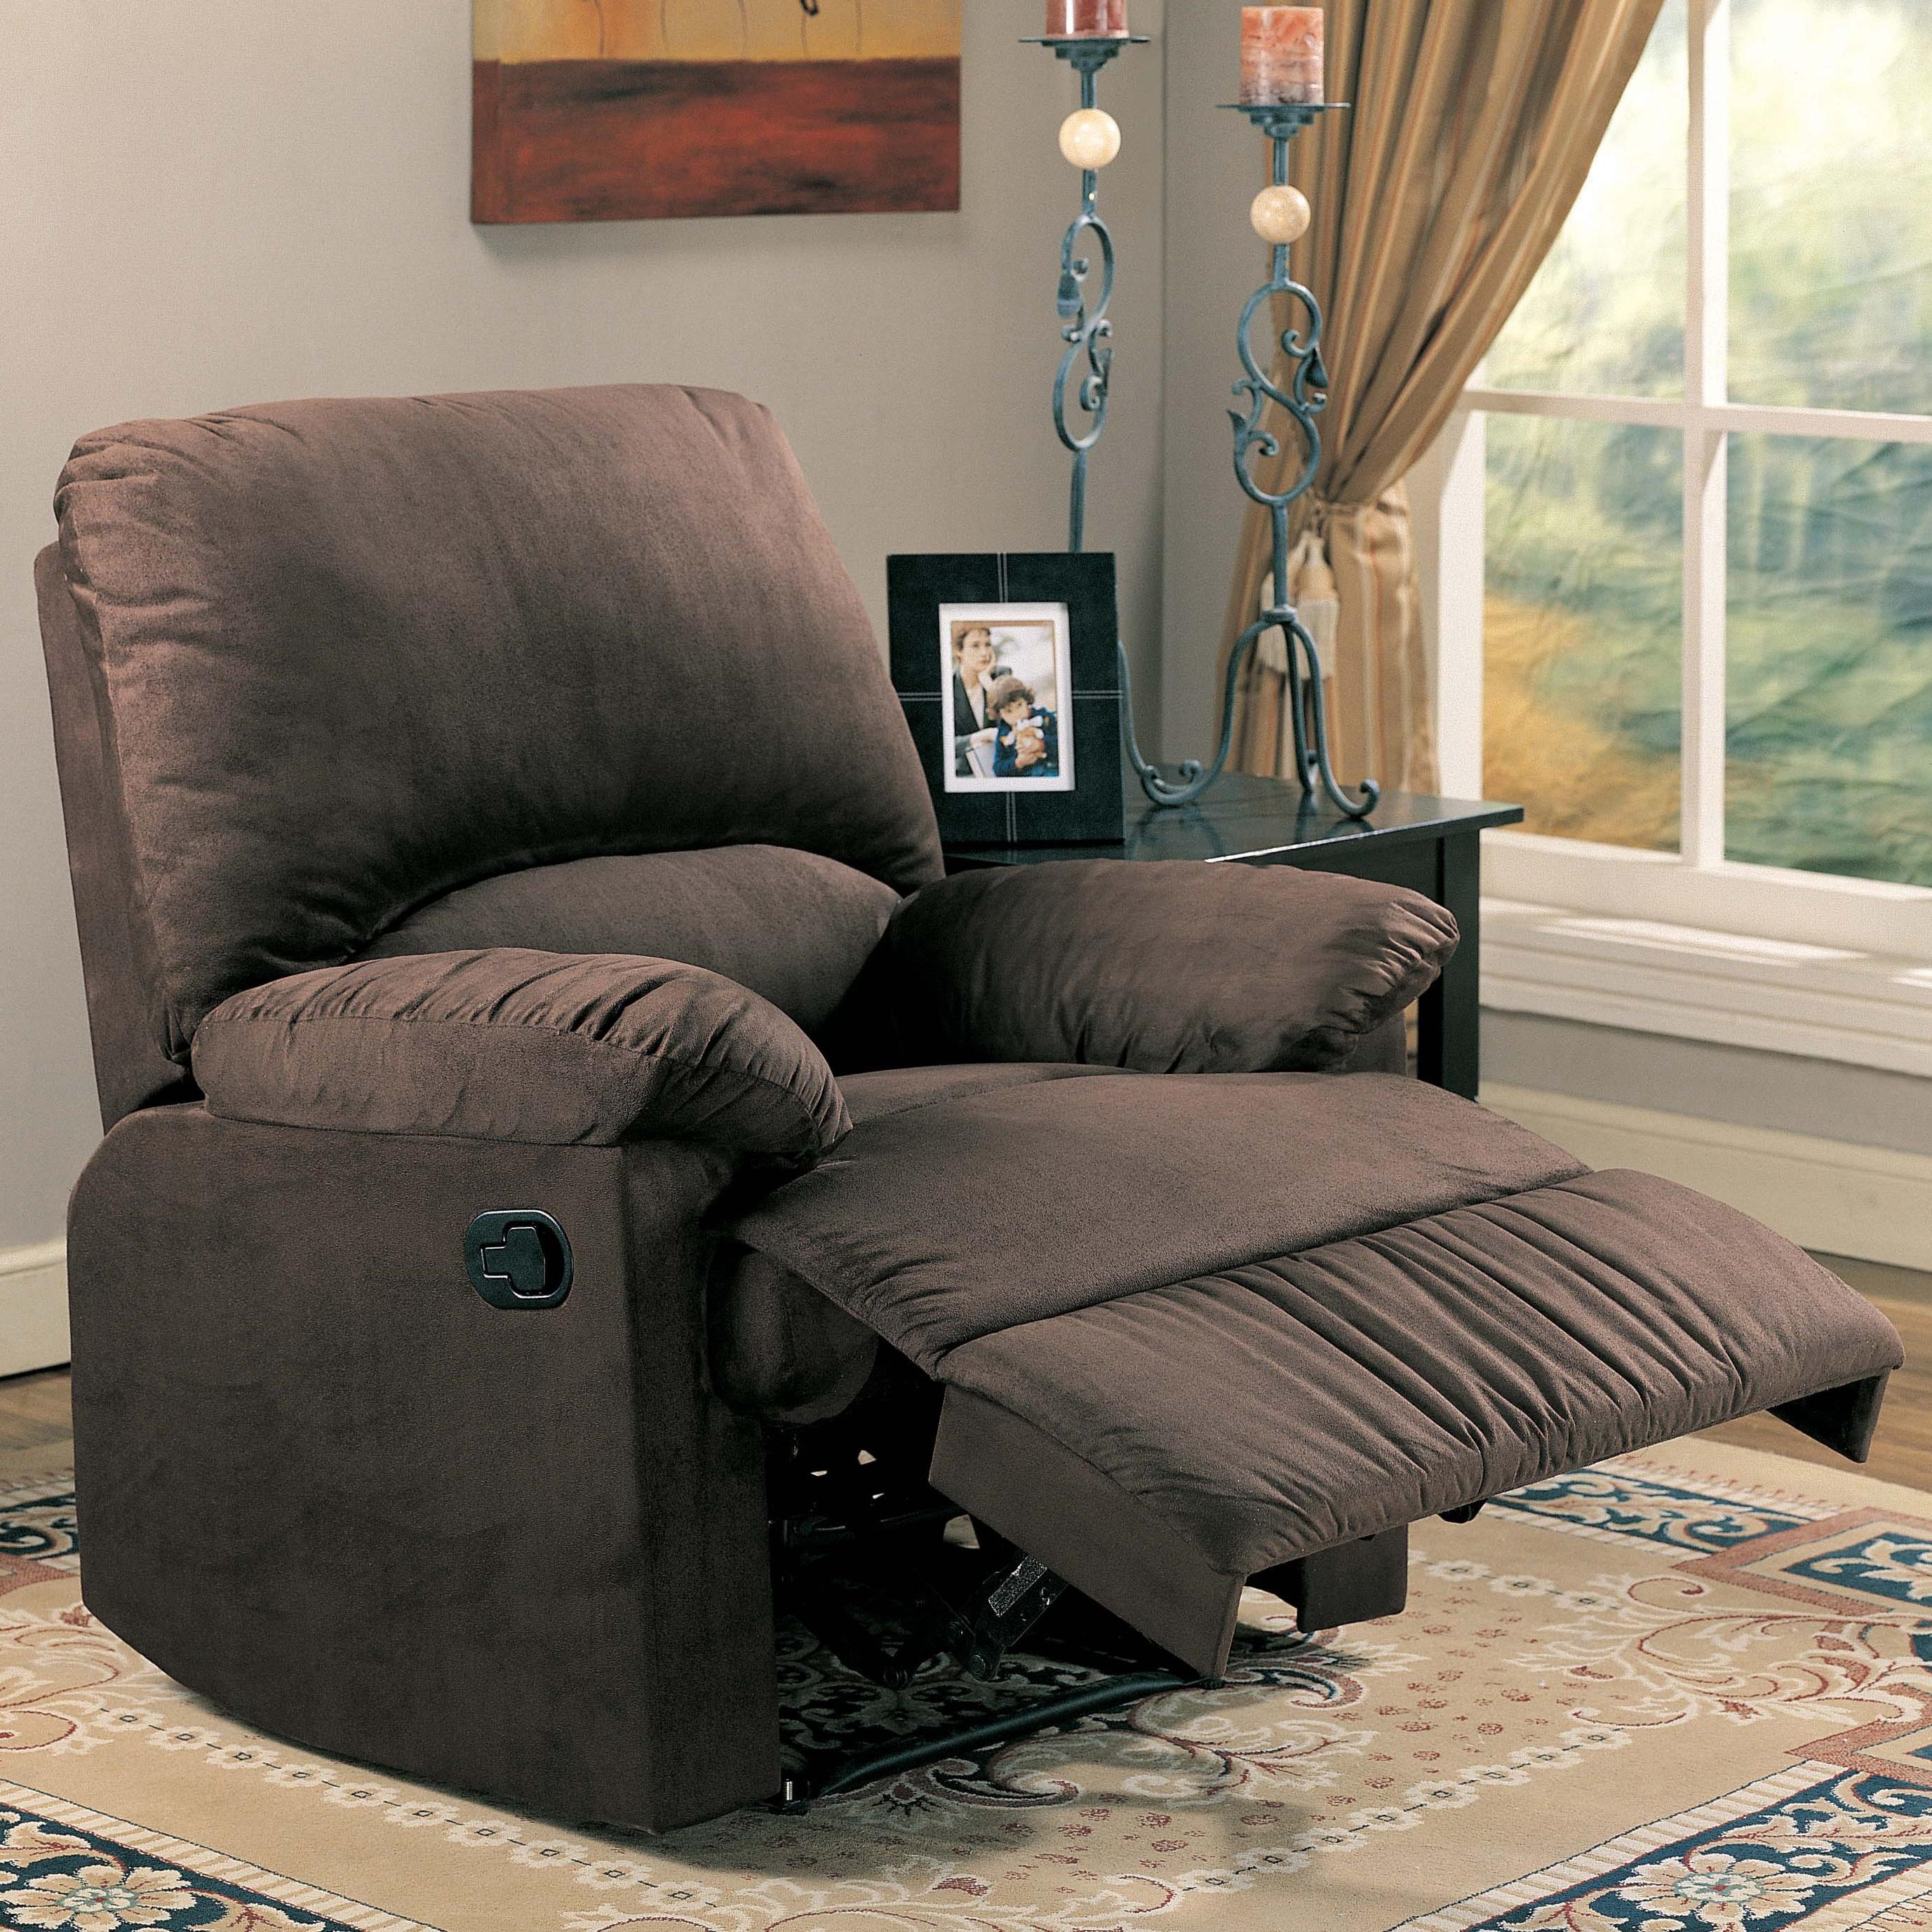 Recliner & Coaster - Find a Local Furniture Store with Coaster Fine Furniture islam-shia.org